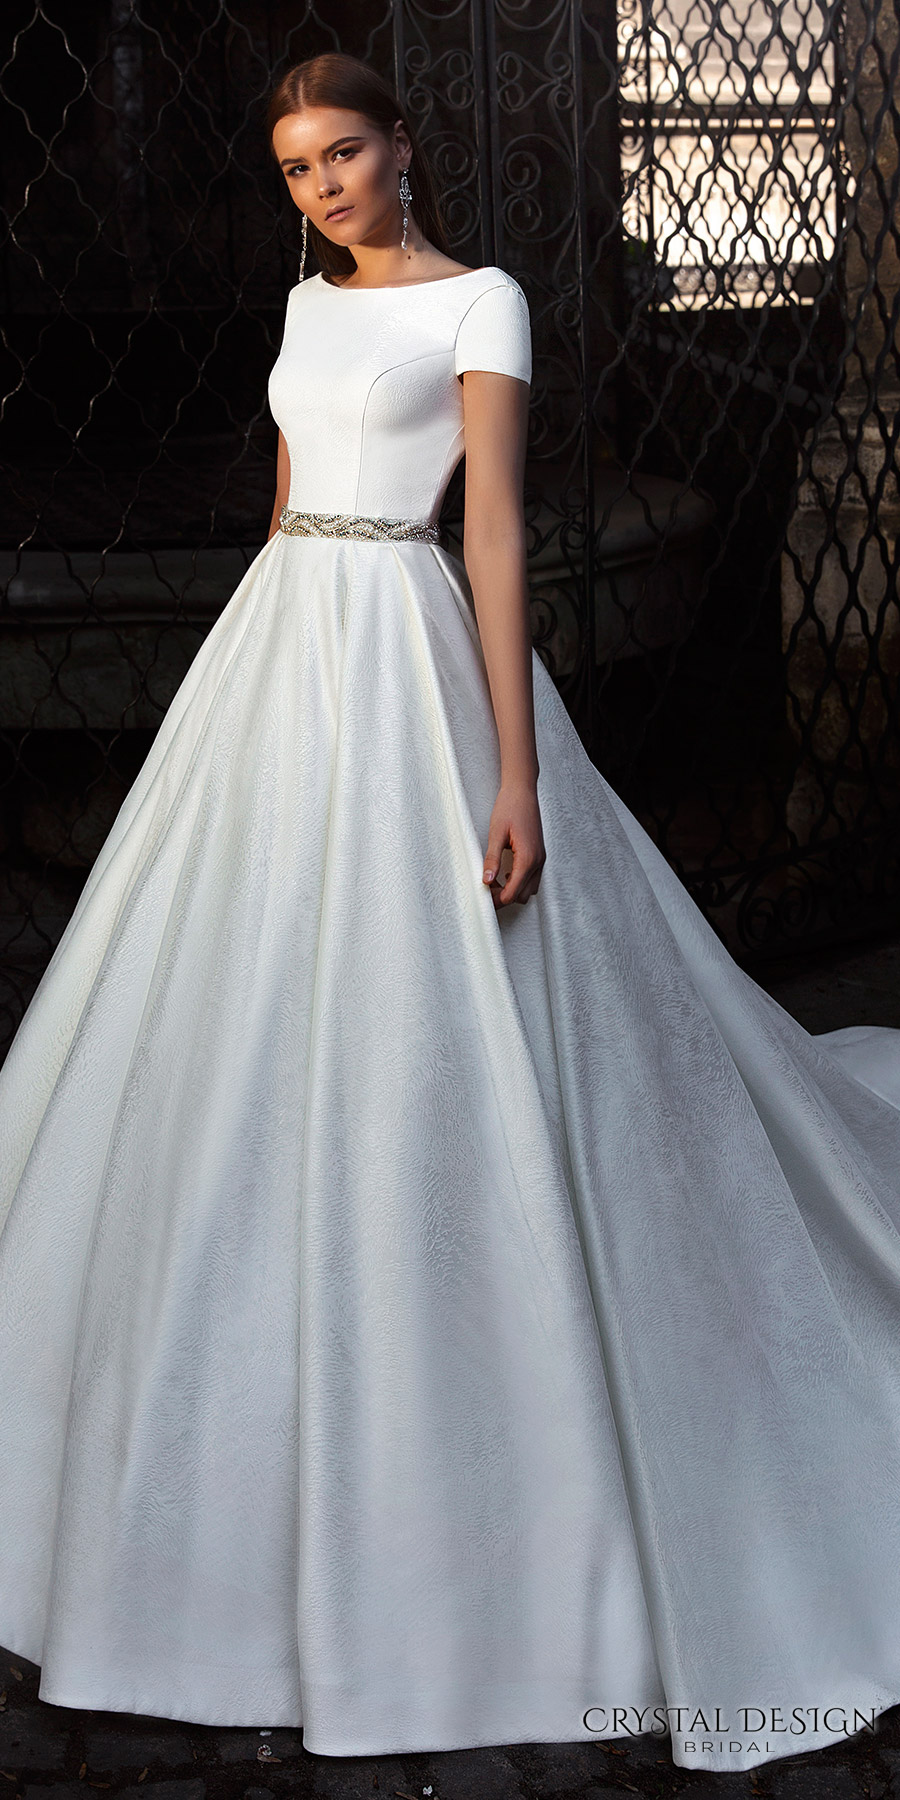 Ball Gown Wedding Dresses With Short Sleeves : Crystal design wedding dresses inspirasi